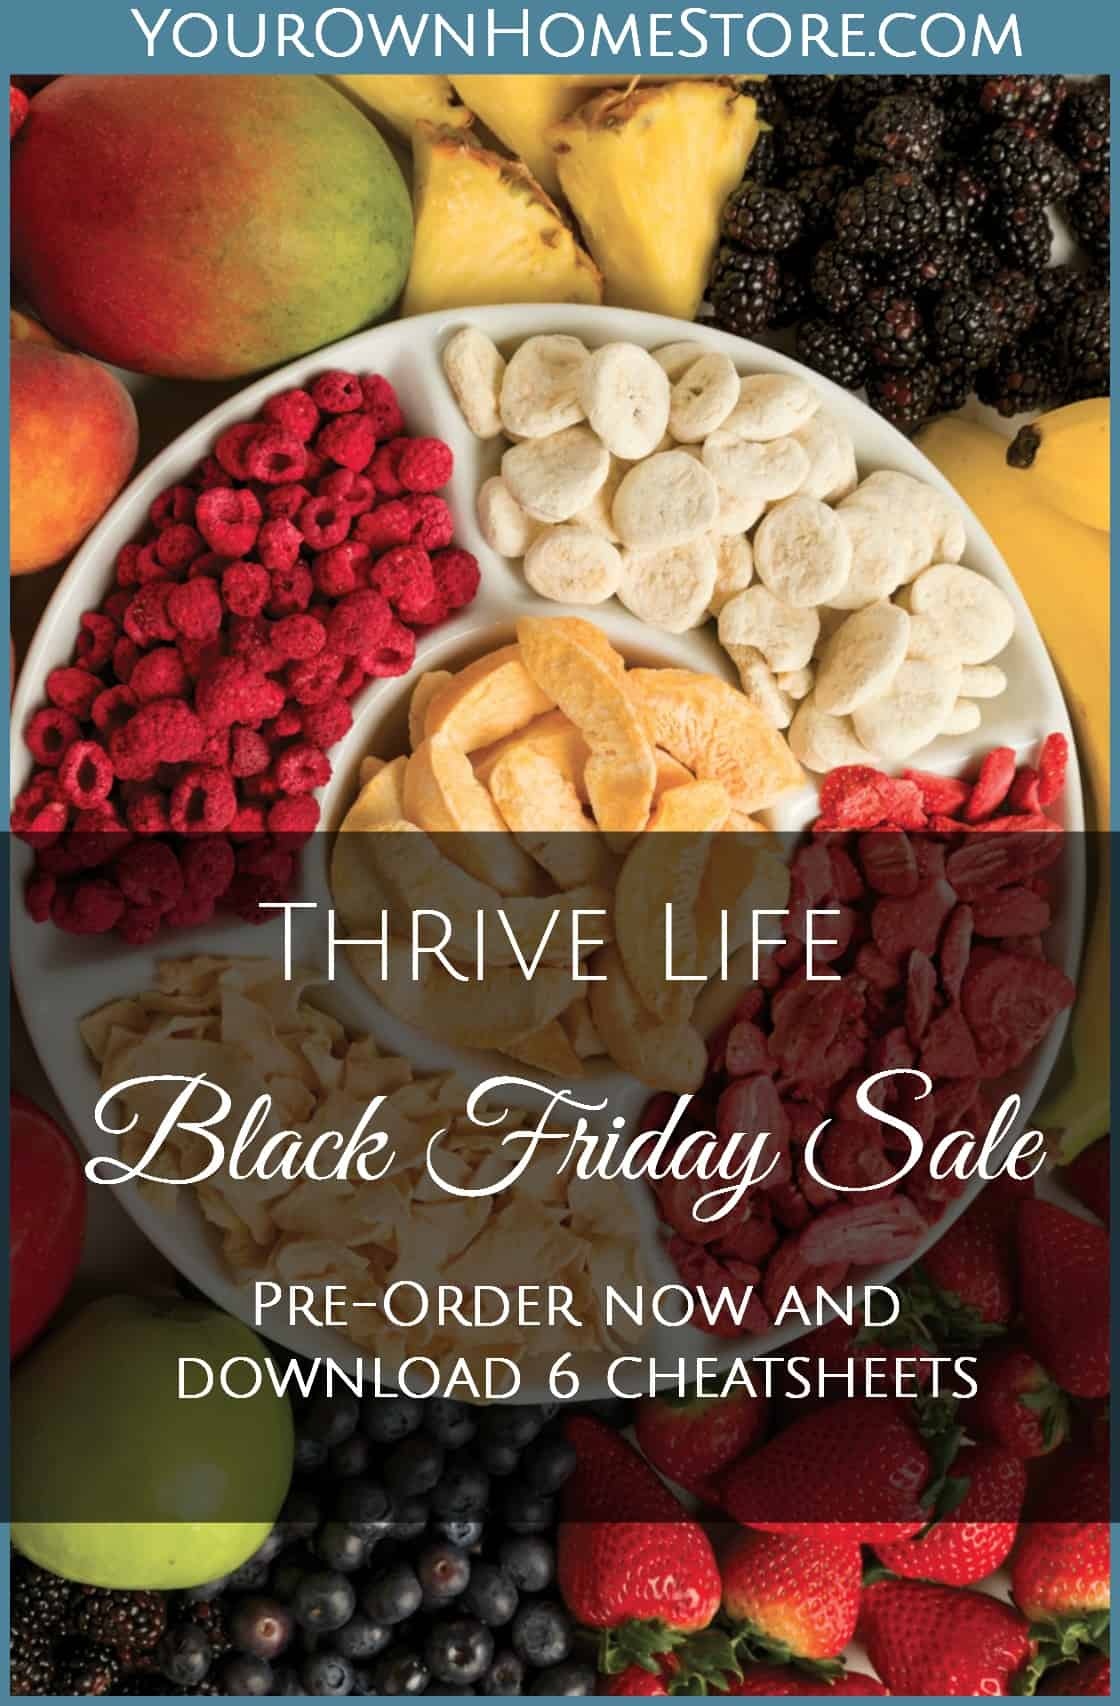 The Thrive Life Black Friday Sale 2016